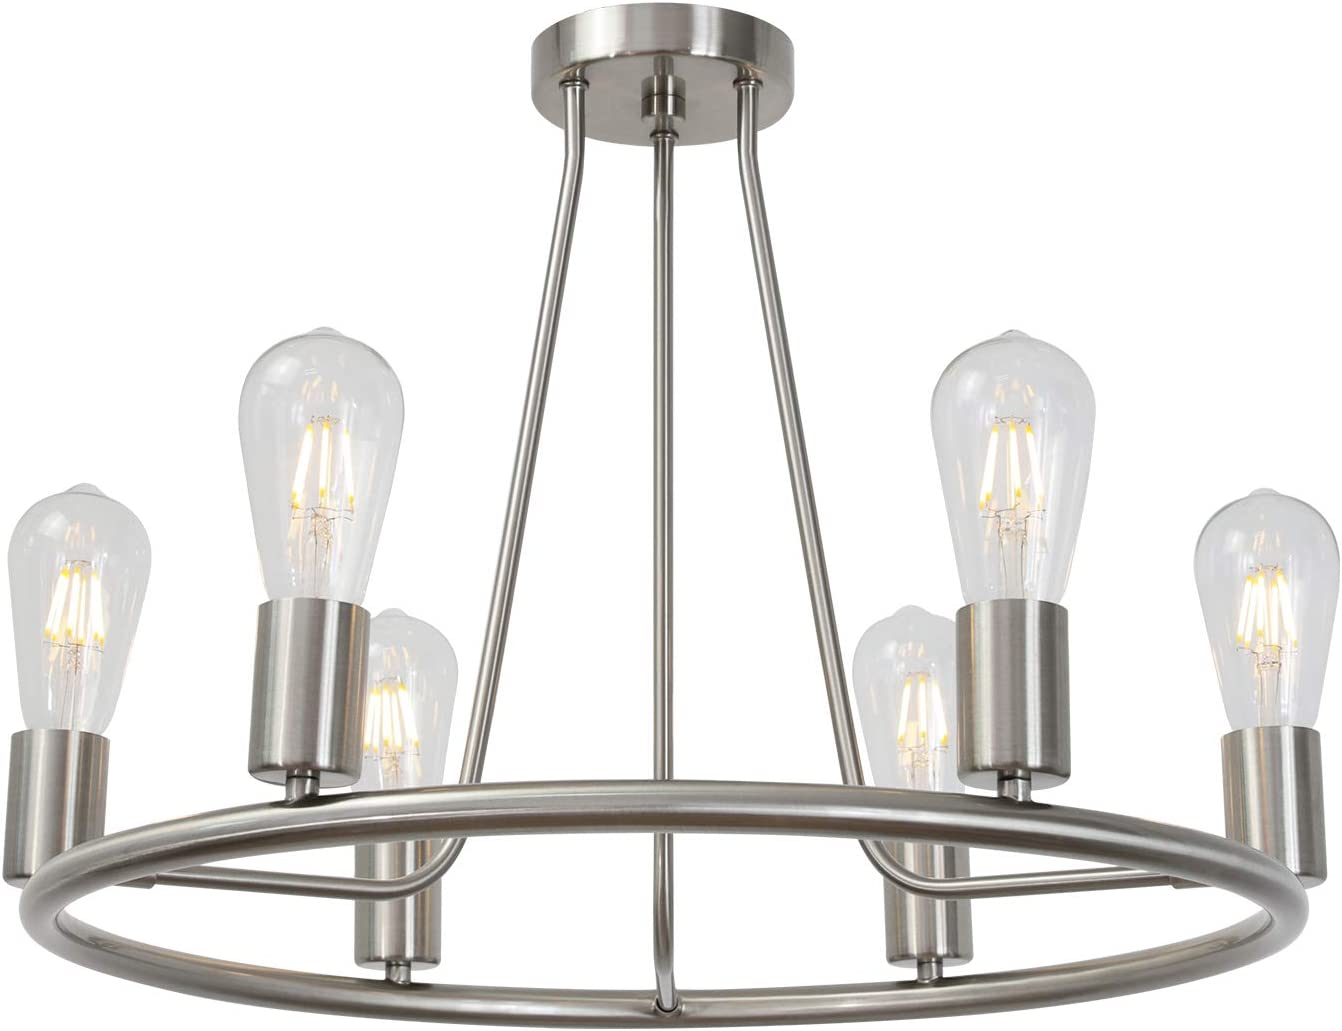 BONLICHT Round Farmhouse Chandelier Lighting 6-Light Modern Indoor Ceiling Lights Brushed Nickel Mid Century Flush Mount Light Fixtures Ceiling Kitchen Island Dining Room Lighting UL Listed